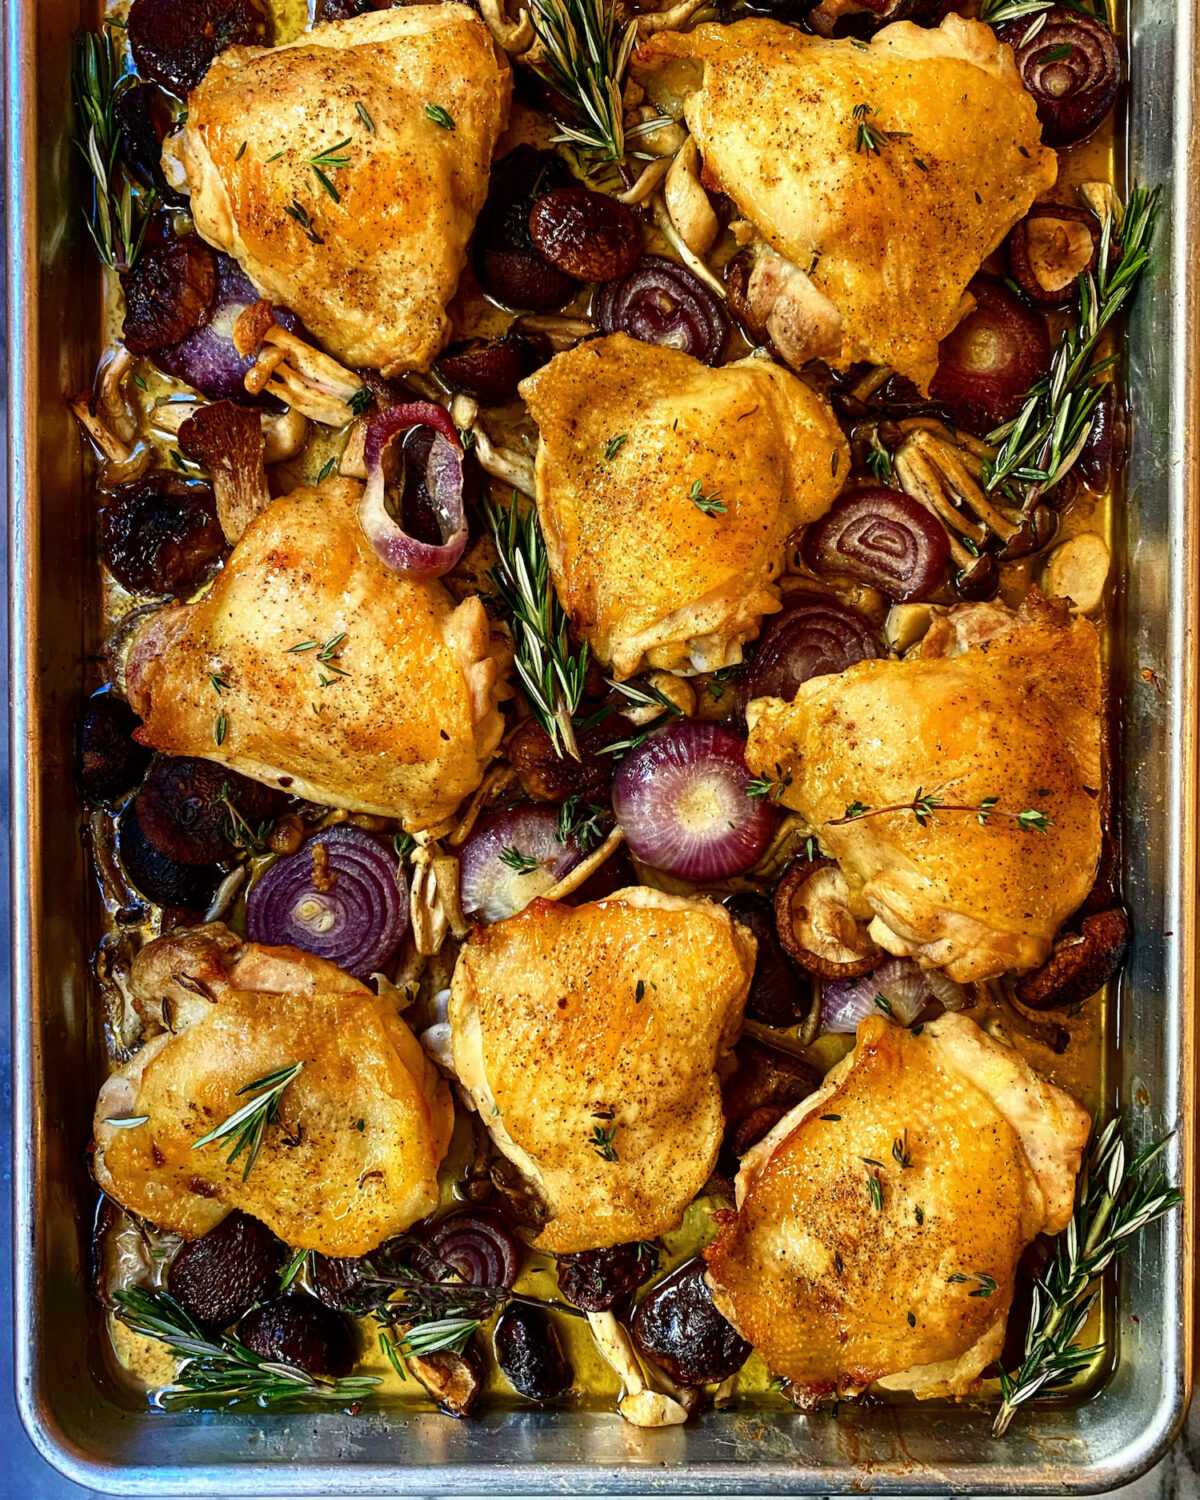 Sheet Pan Chicken With Wild Mushrooms and Onions